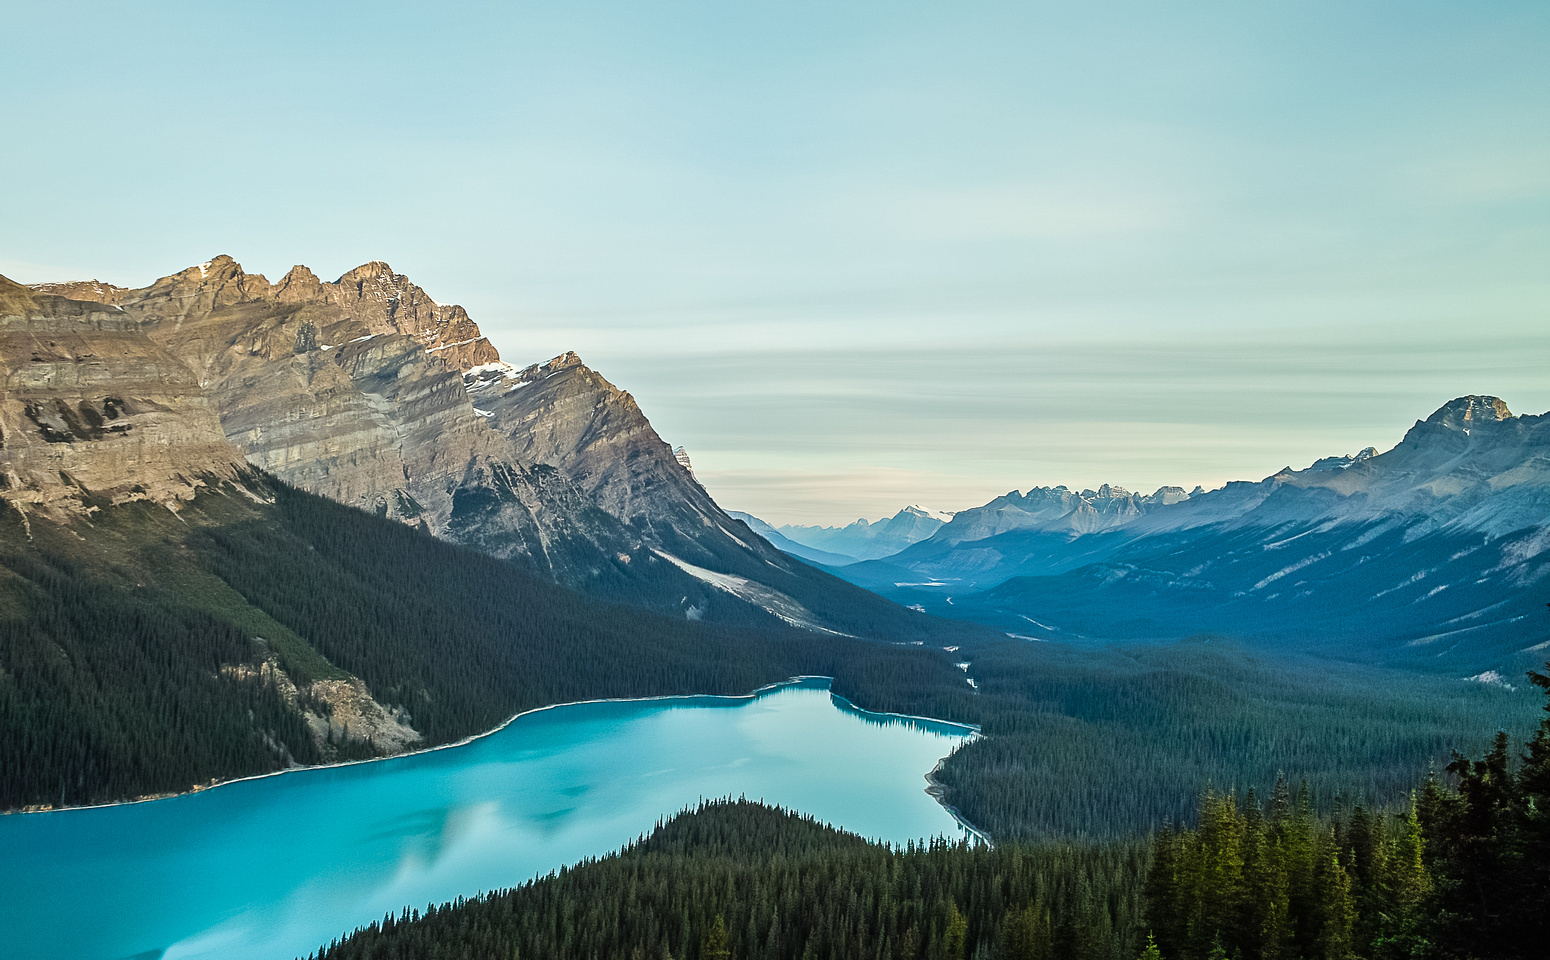 Gorgeous Peyto Lake in early morning lighting.